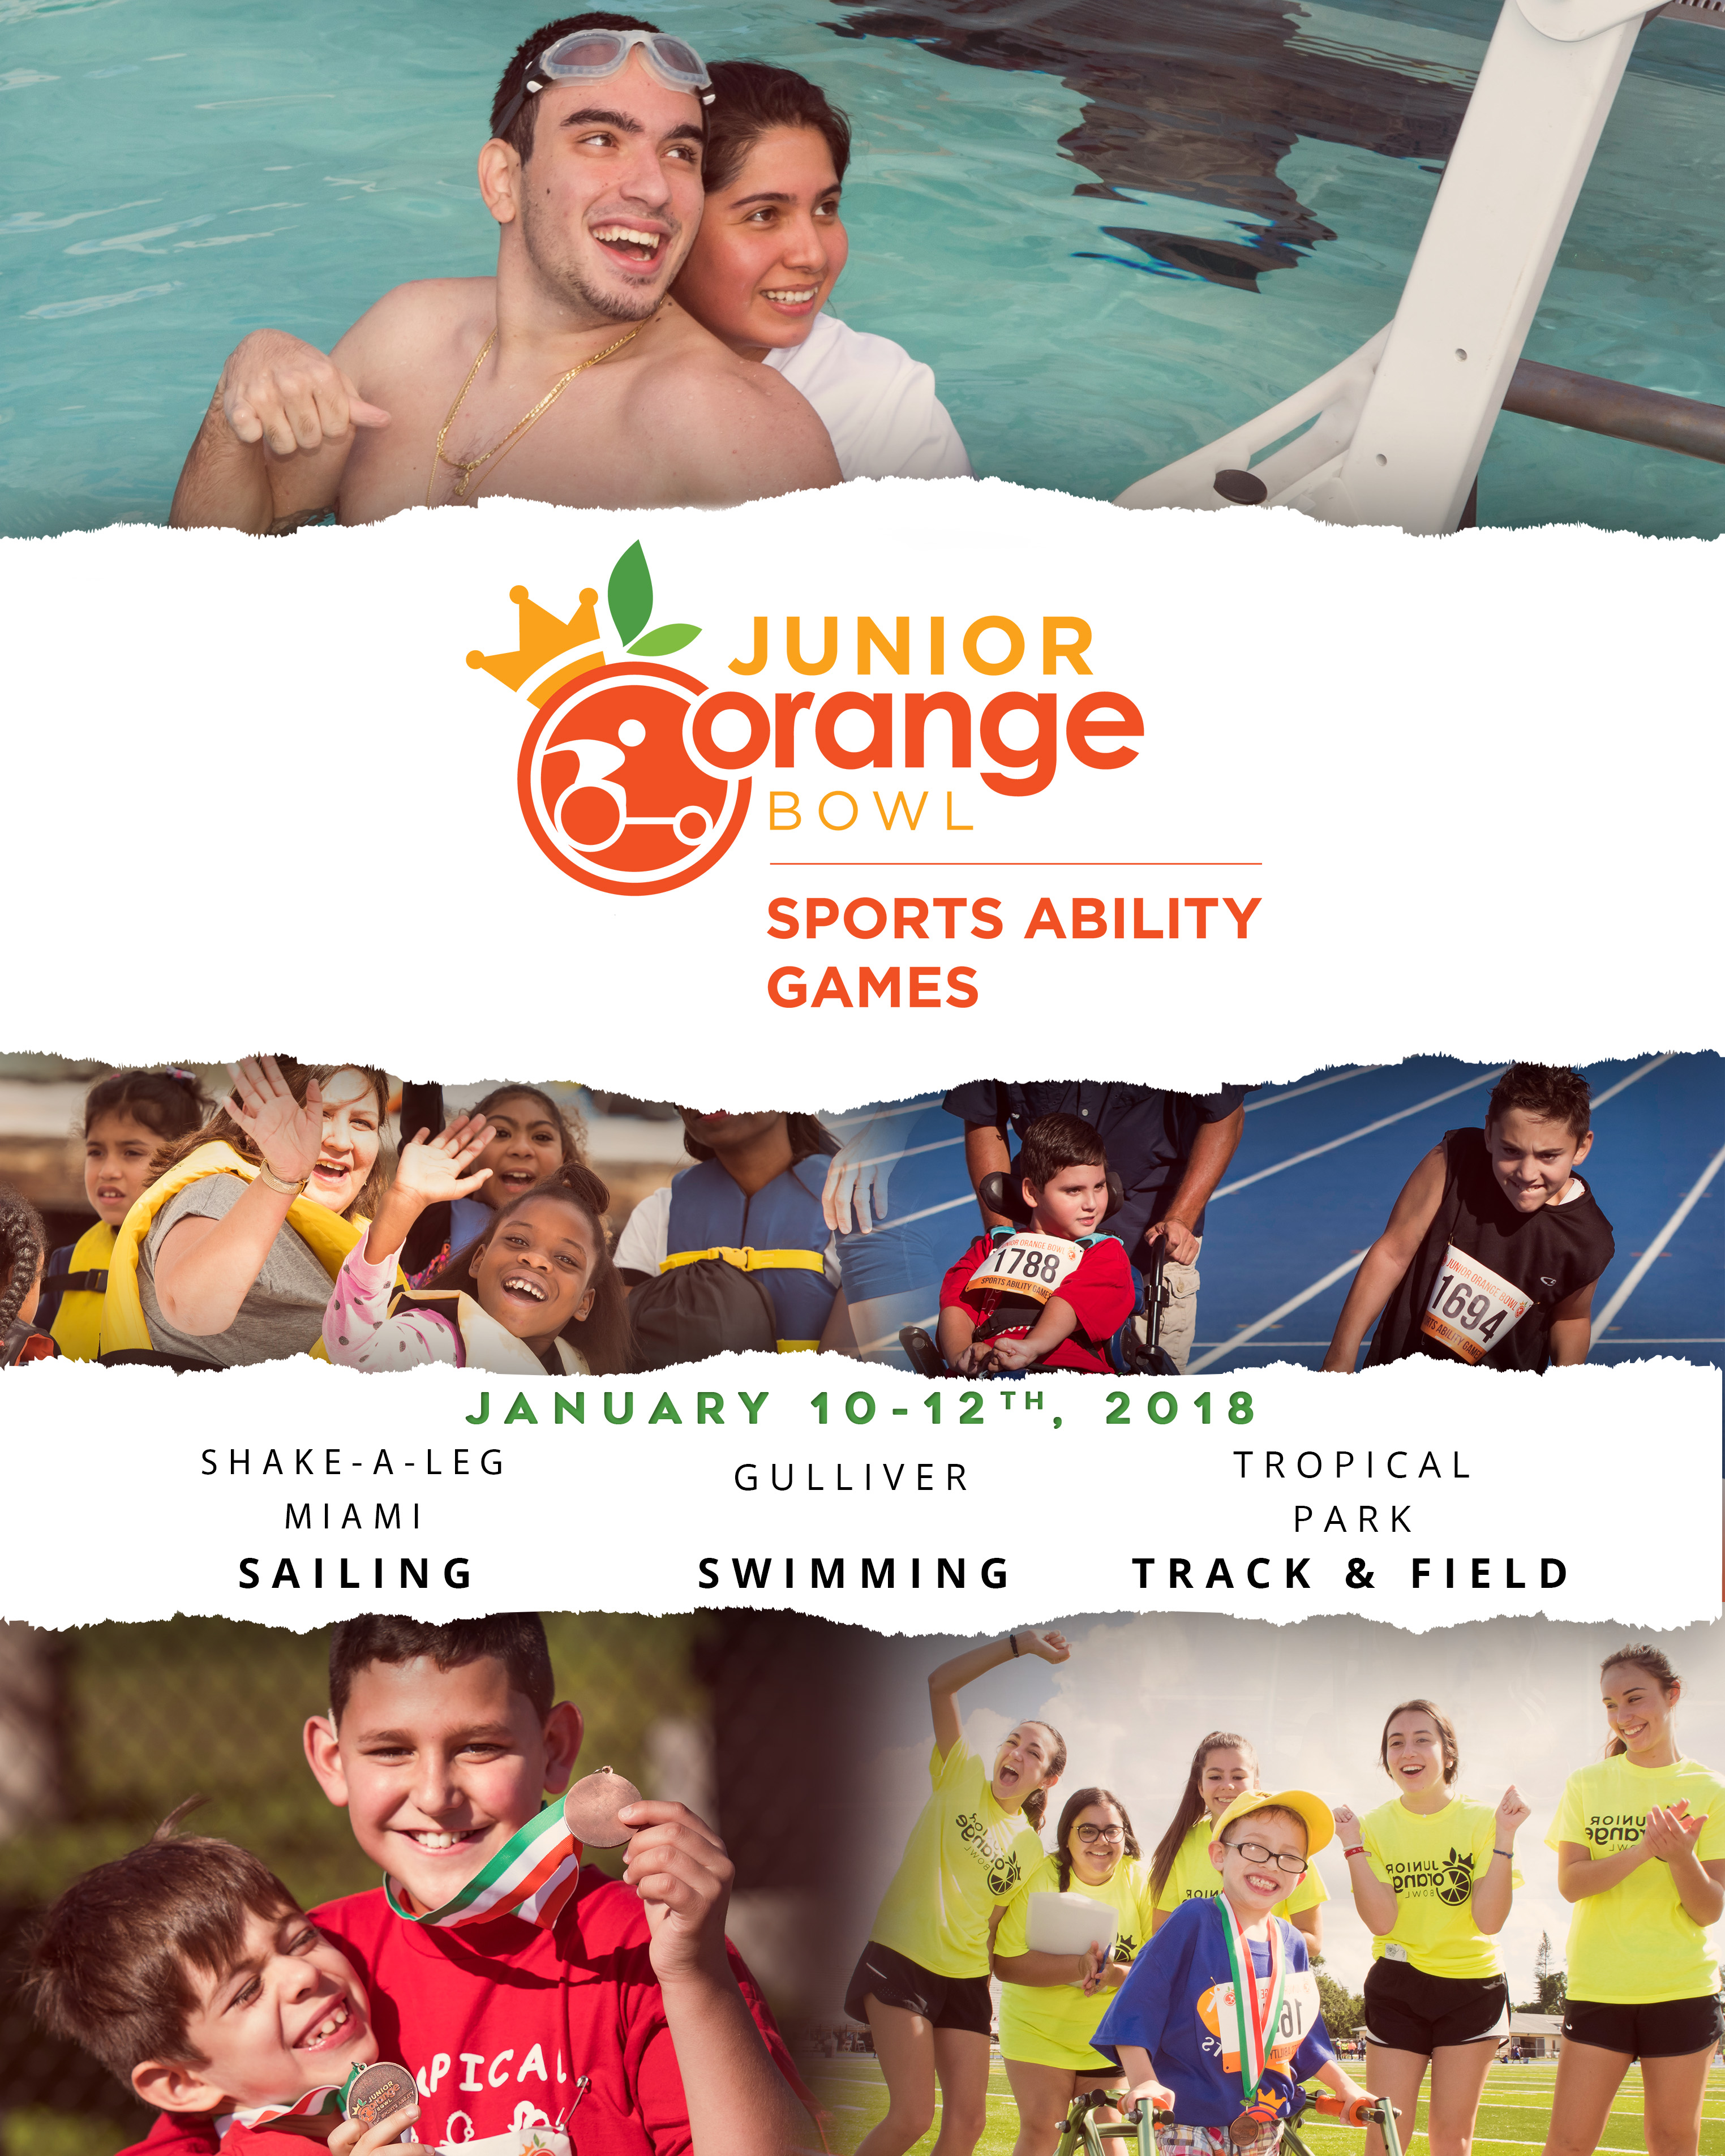 Sports Ability Games